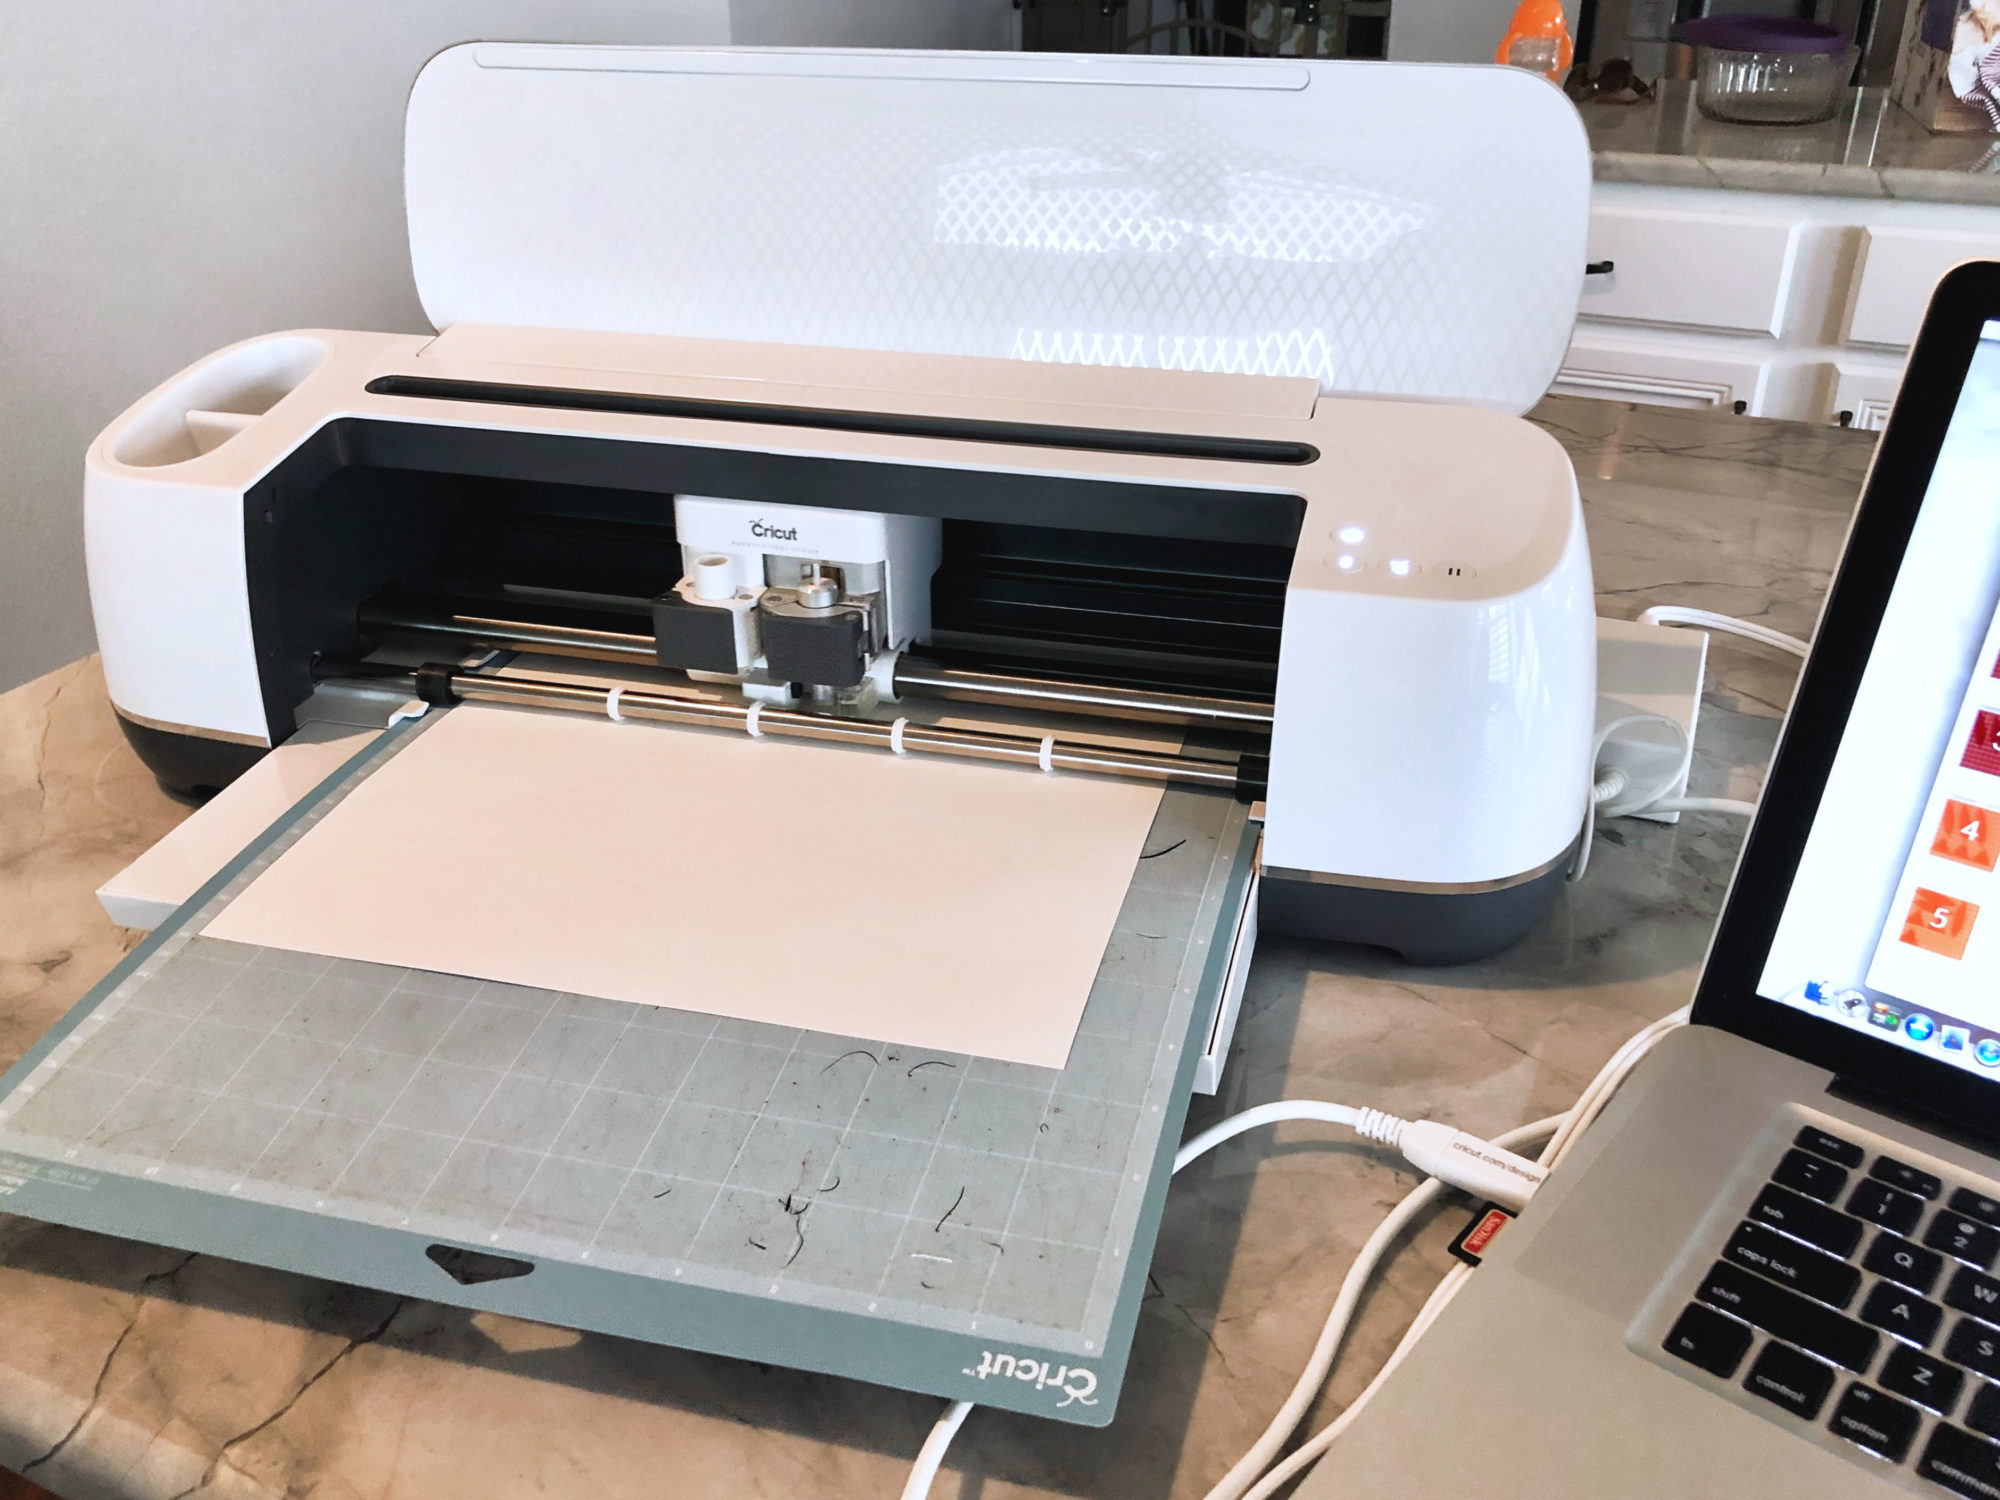 Cricut Maker loaded with white cardstock sitting on a marble countertop.